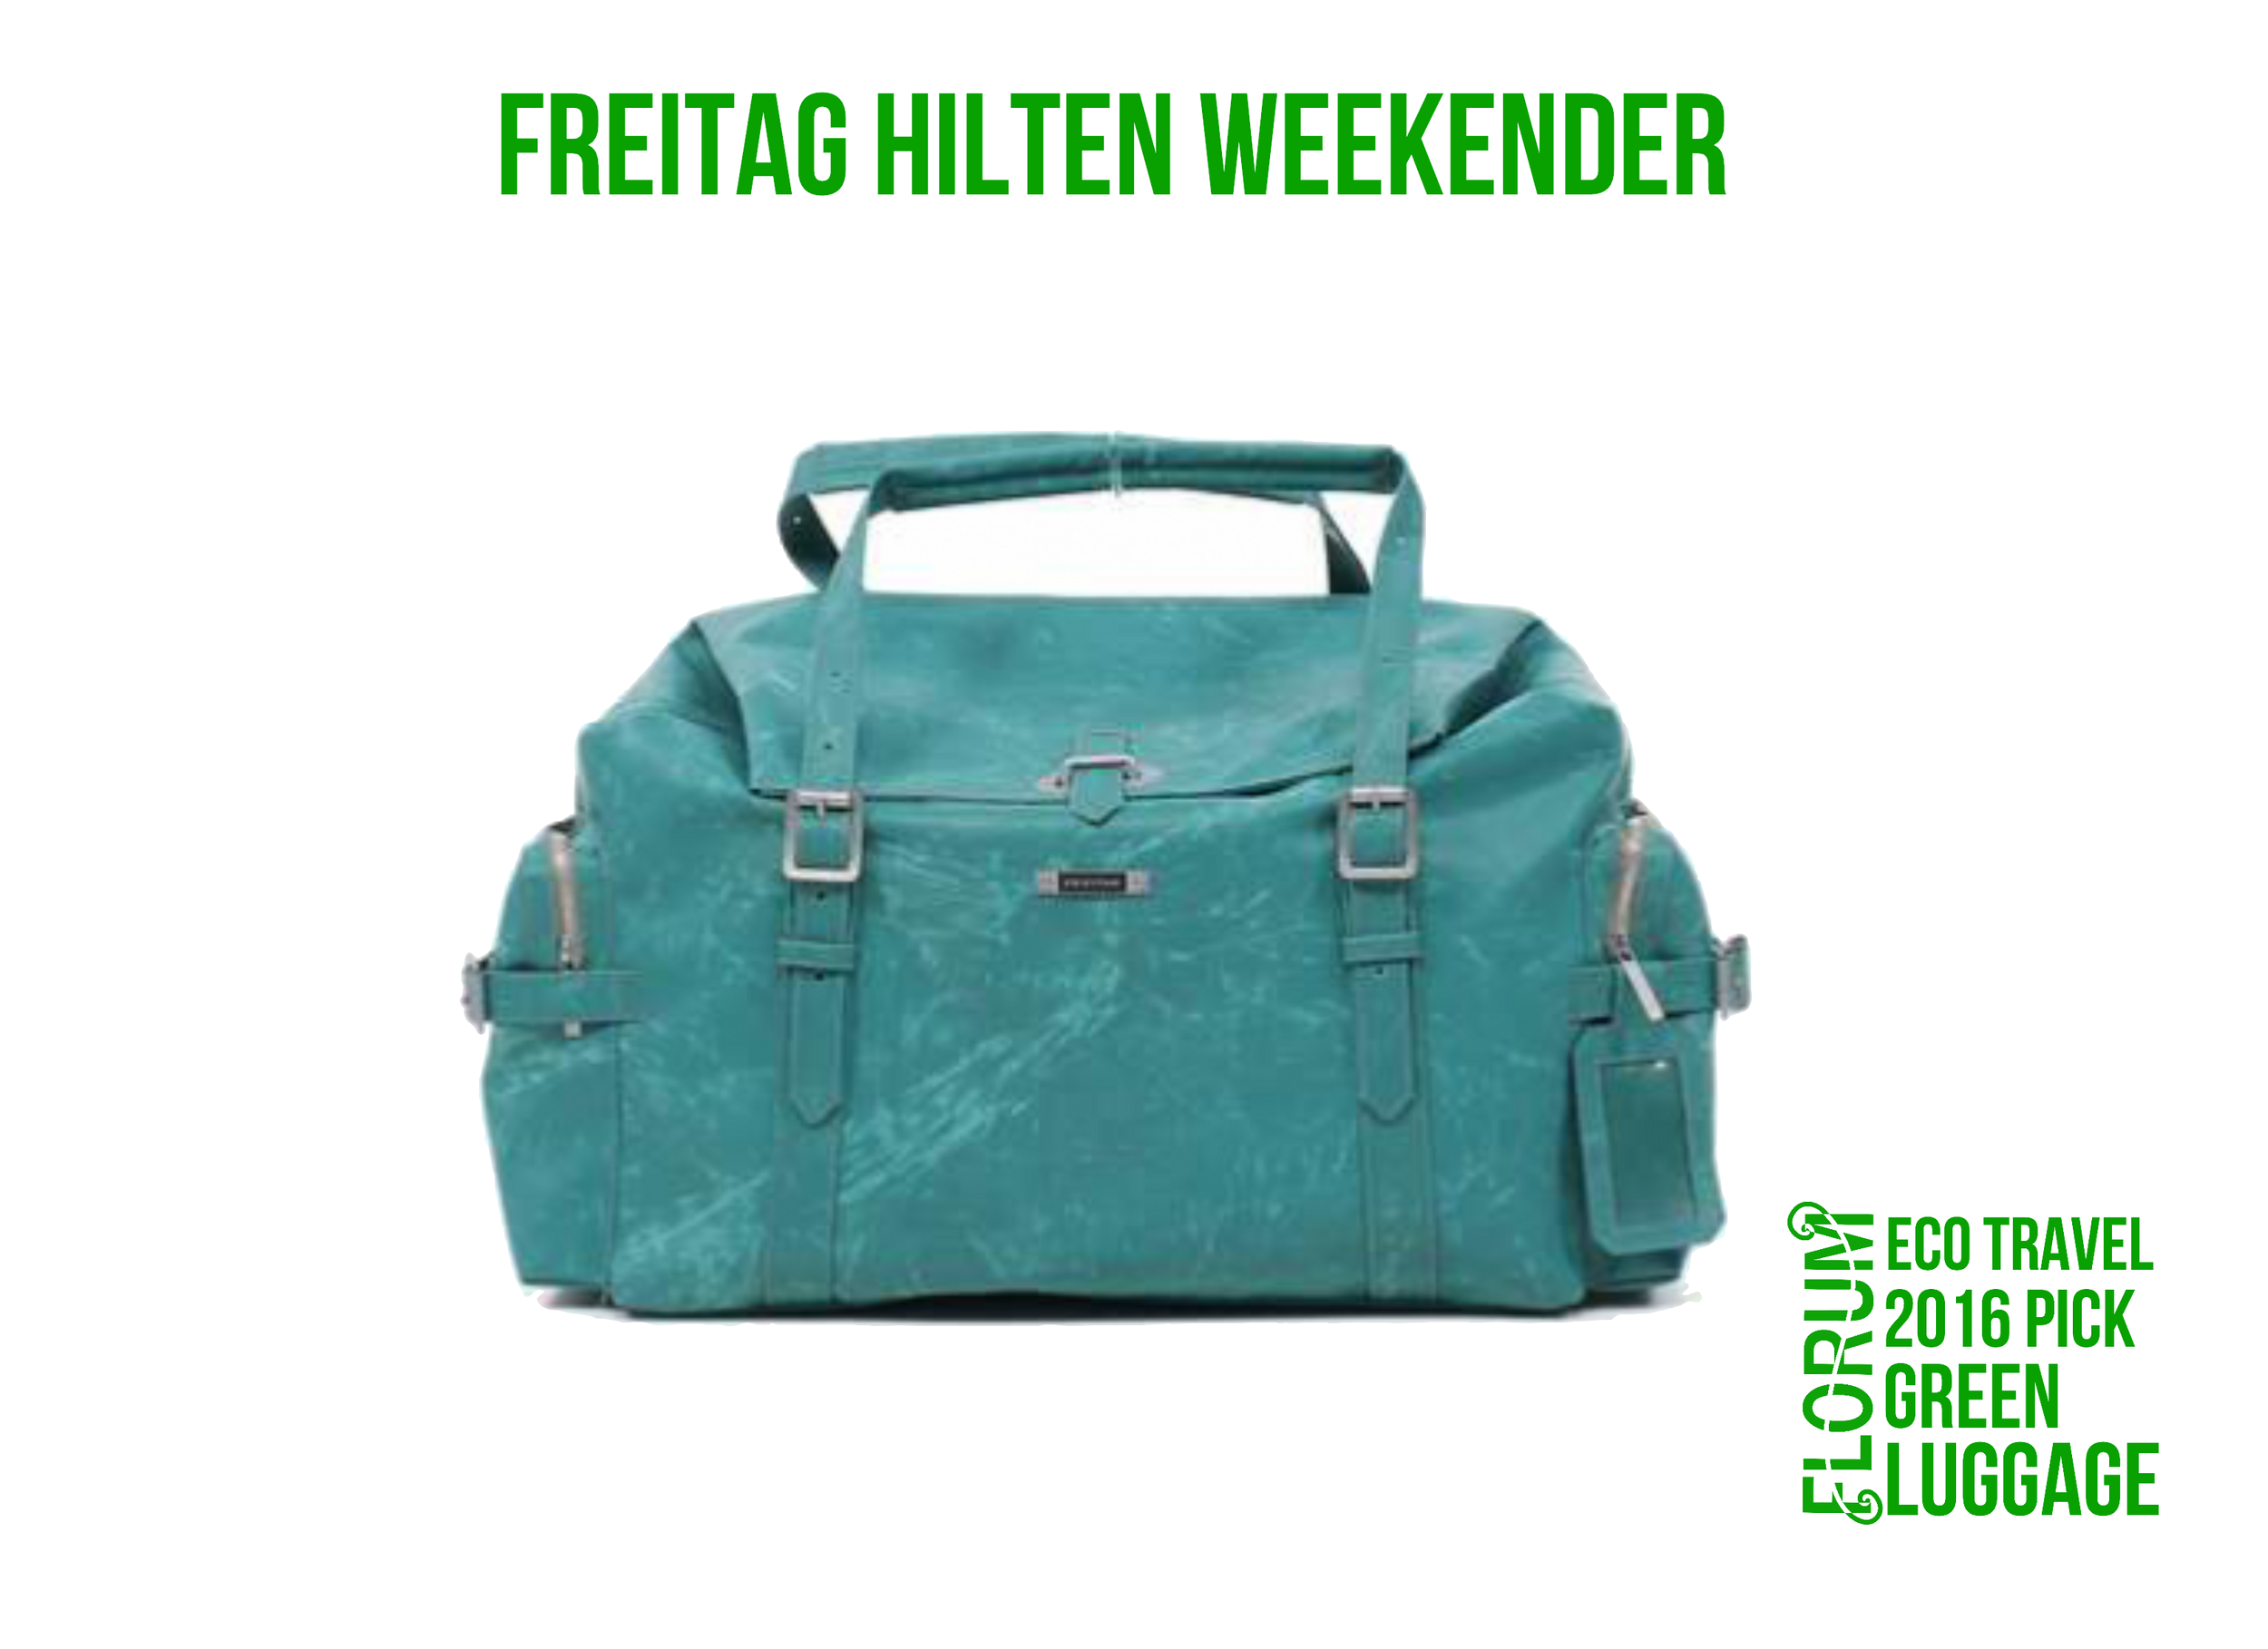 Florum Eco Travel 2016 Green Luggage Pick - Freitag Hilten Weekender - by Noelle Lynne